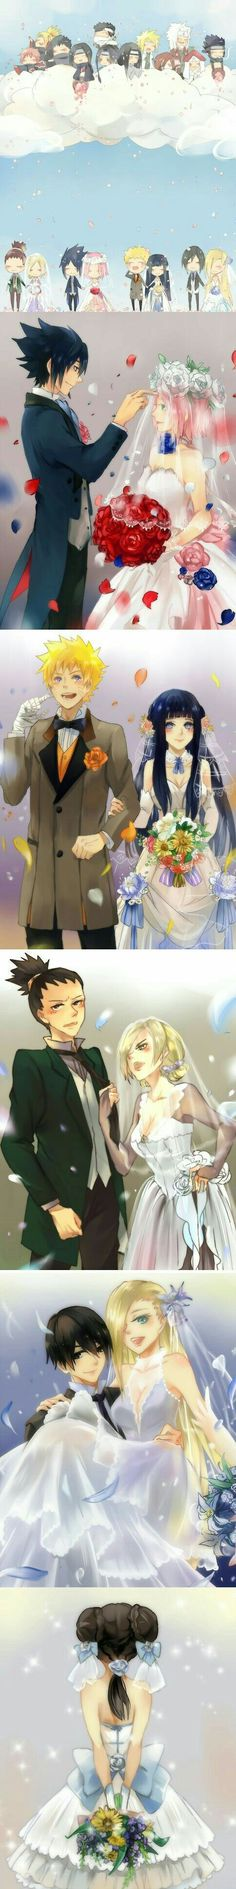 Ahhhh*Heart pounding.... Every couple is The best Ship i ever Imagined...... Except...... Tenten.... I feel so Sad For Her... Ohh.. if Only... Neji...But Simultaneously... I find itachi Sasori and And Diedara Funny... There's neji too